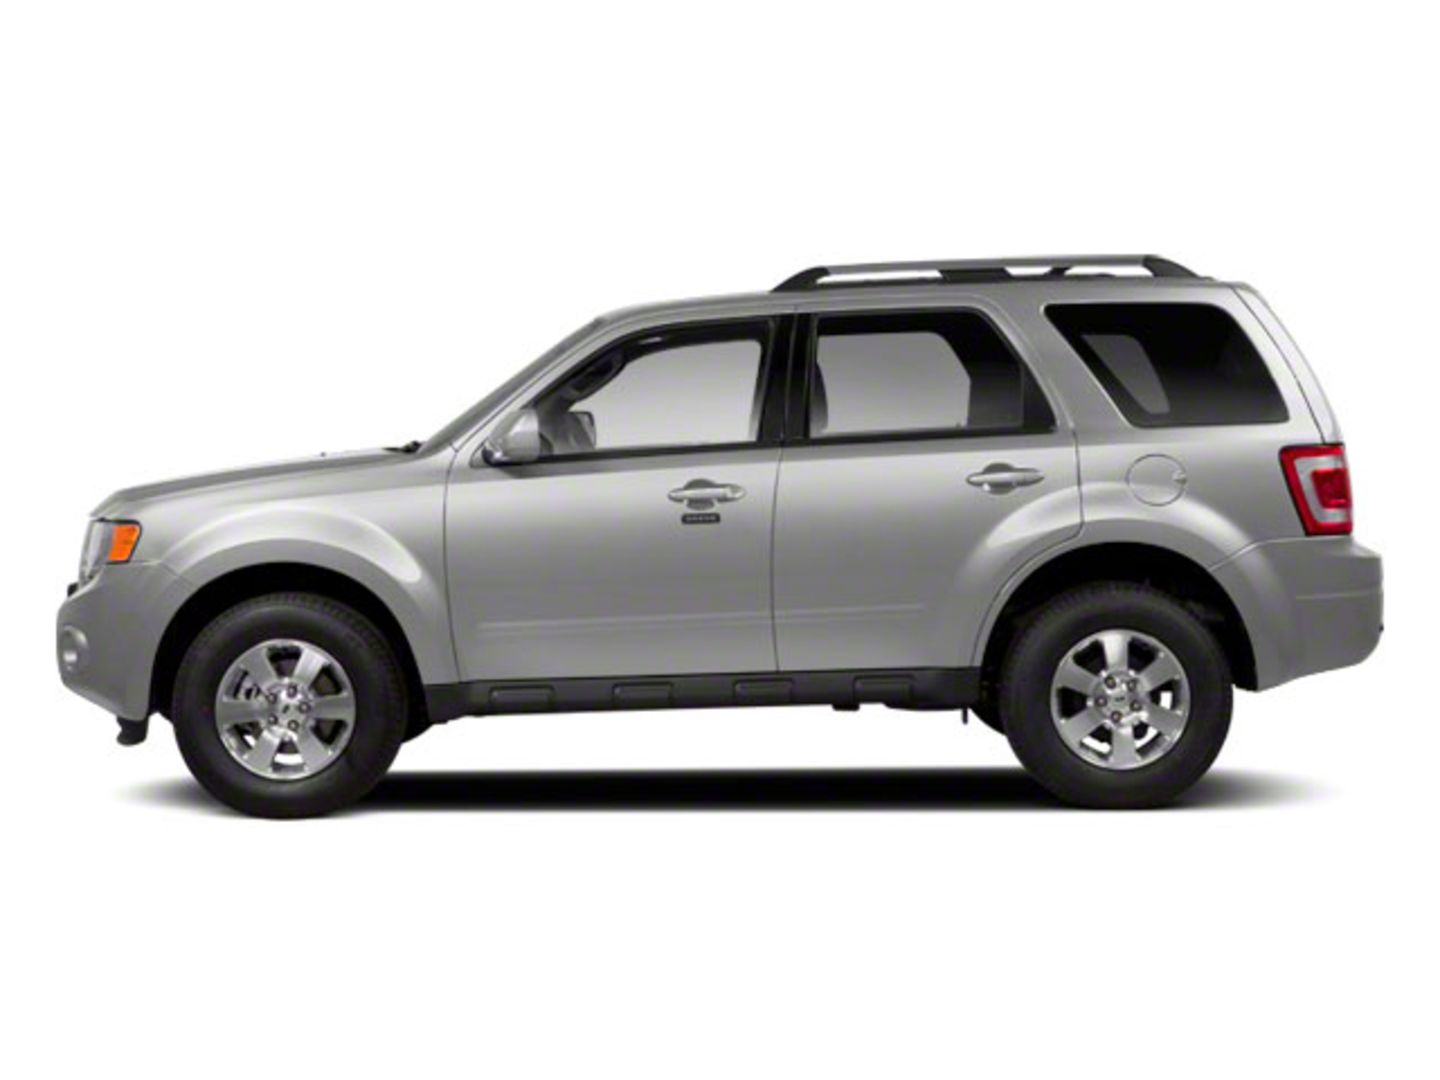 2010 Ford Escape XLT for sale in Red Deer, Alberta